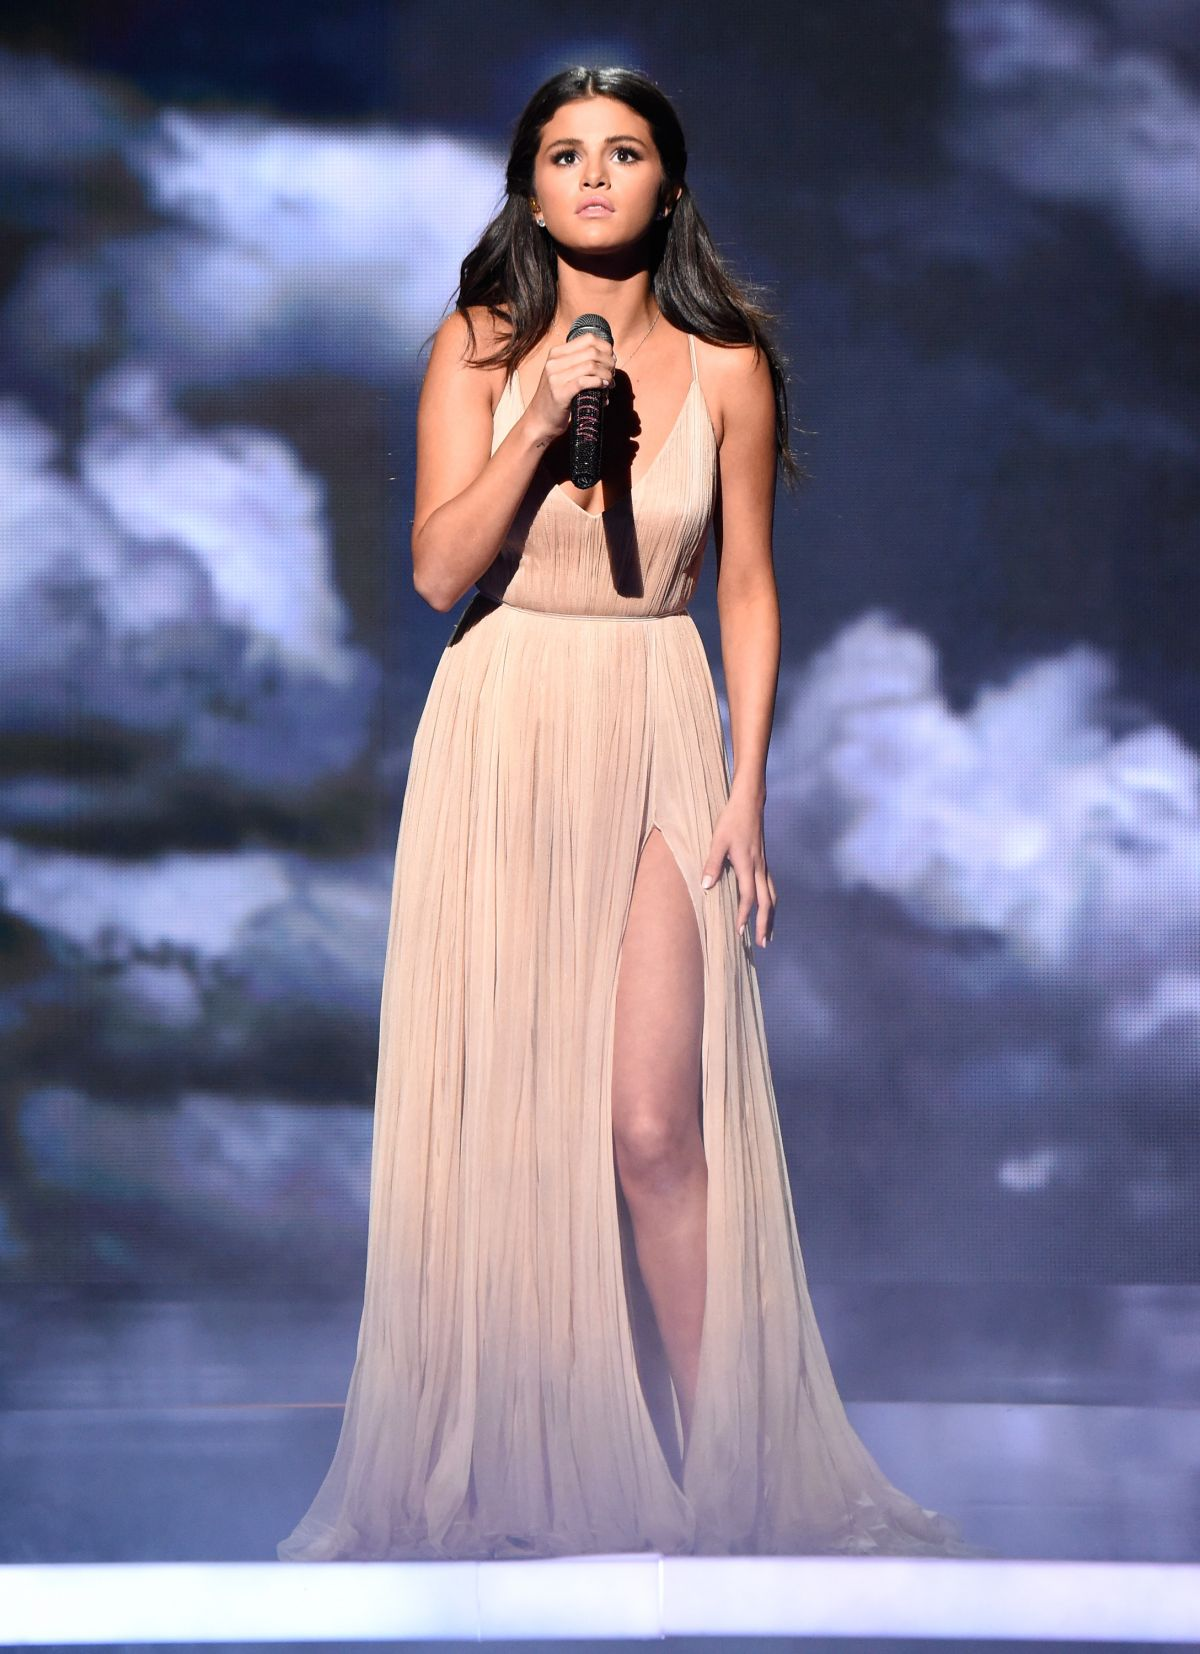 Selena gomez performs at 2014 american music awards in los angeles hawtcele - Photo selena gomez 2014 ...